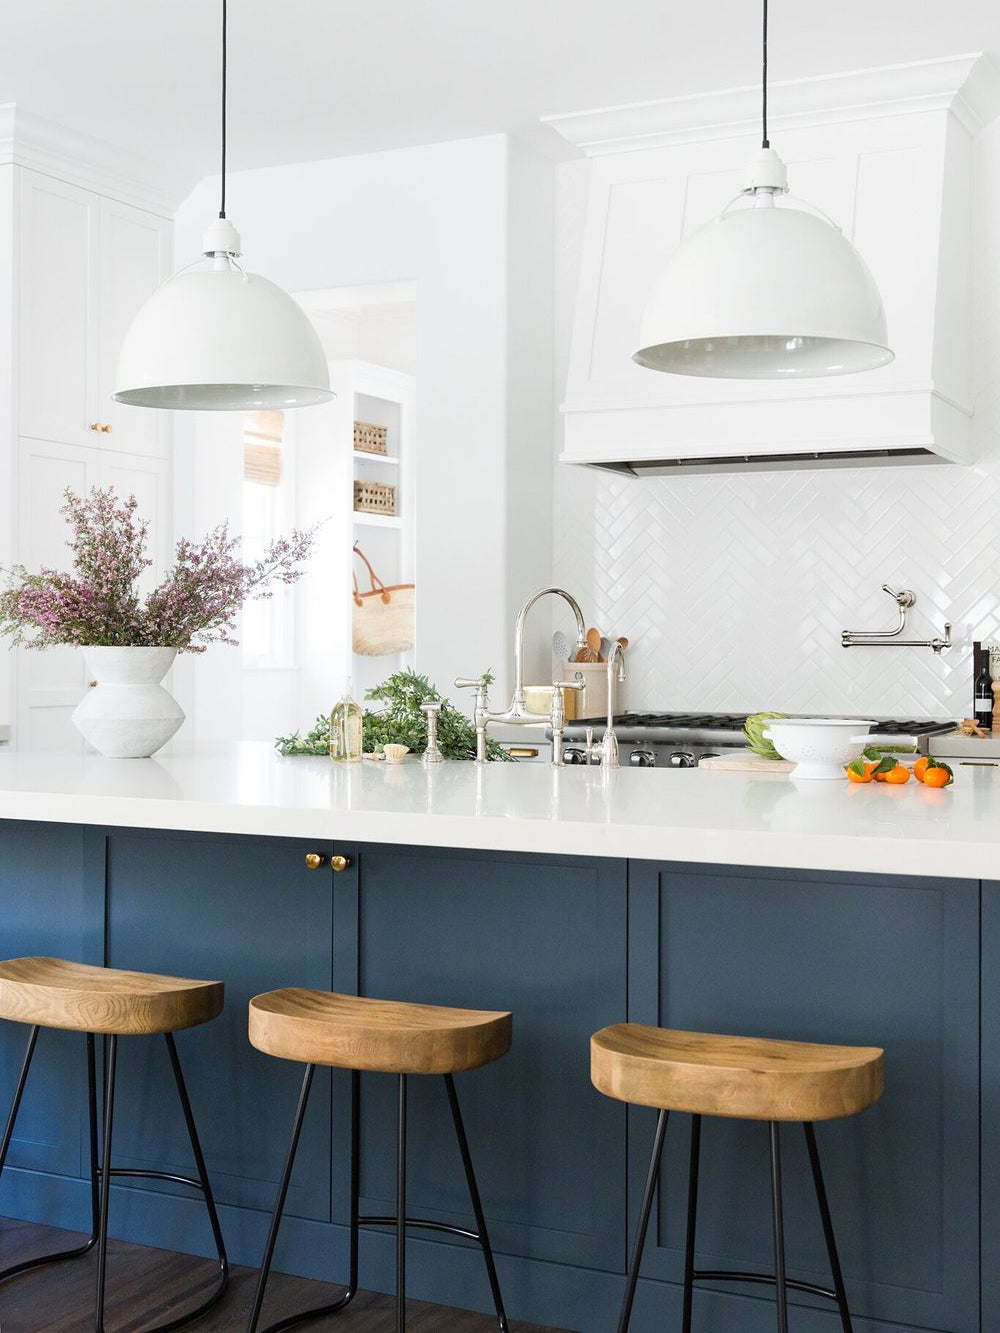 white and blue kitchen with bar stools at island